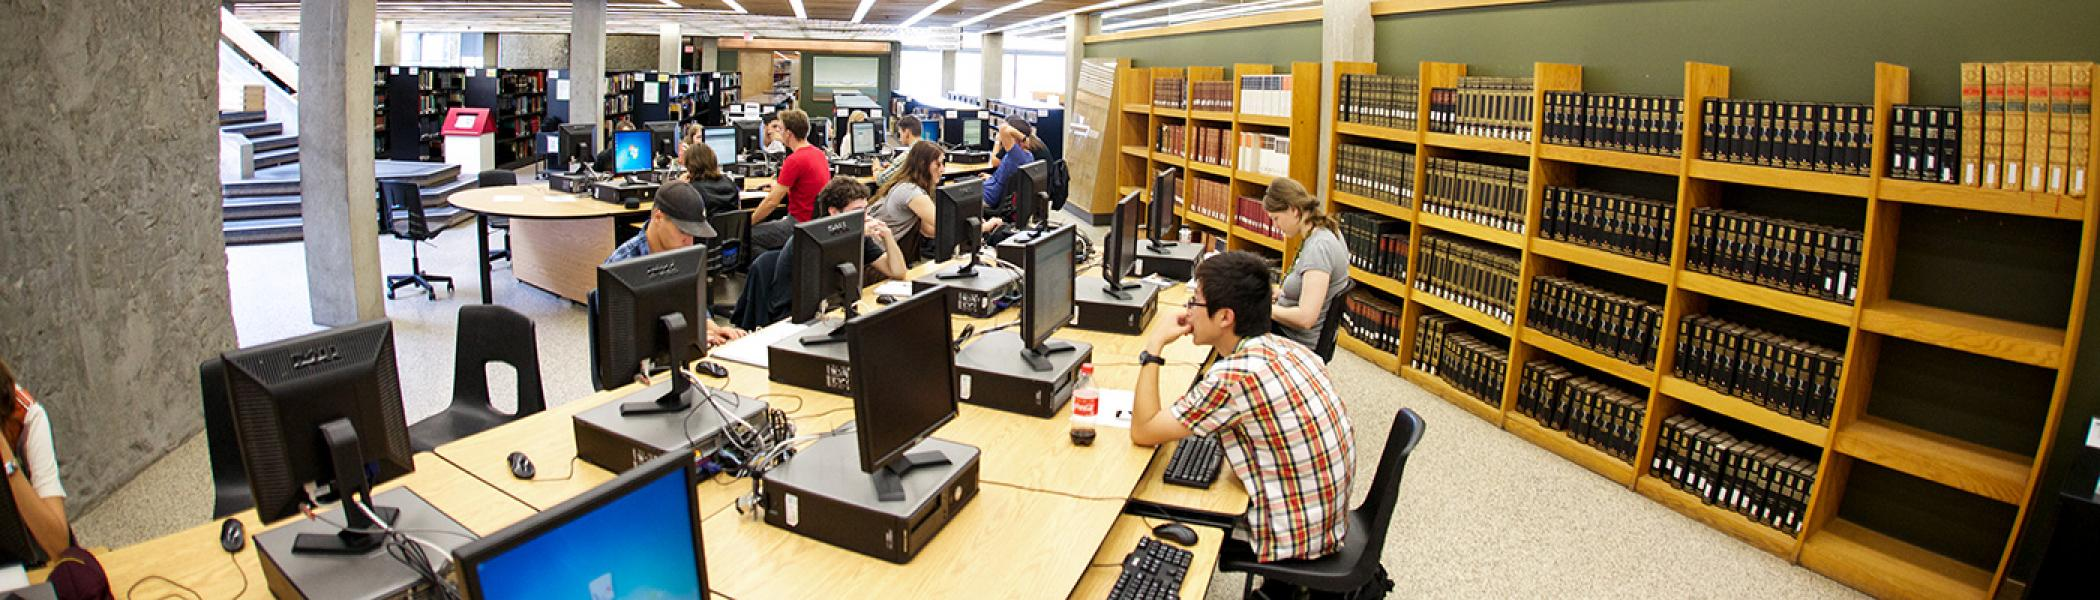 Students sitting at computers studying in the library surrounded by book shelves